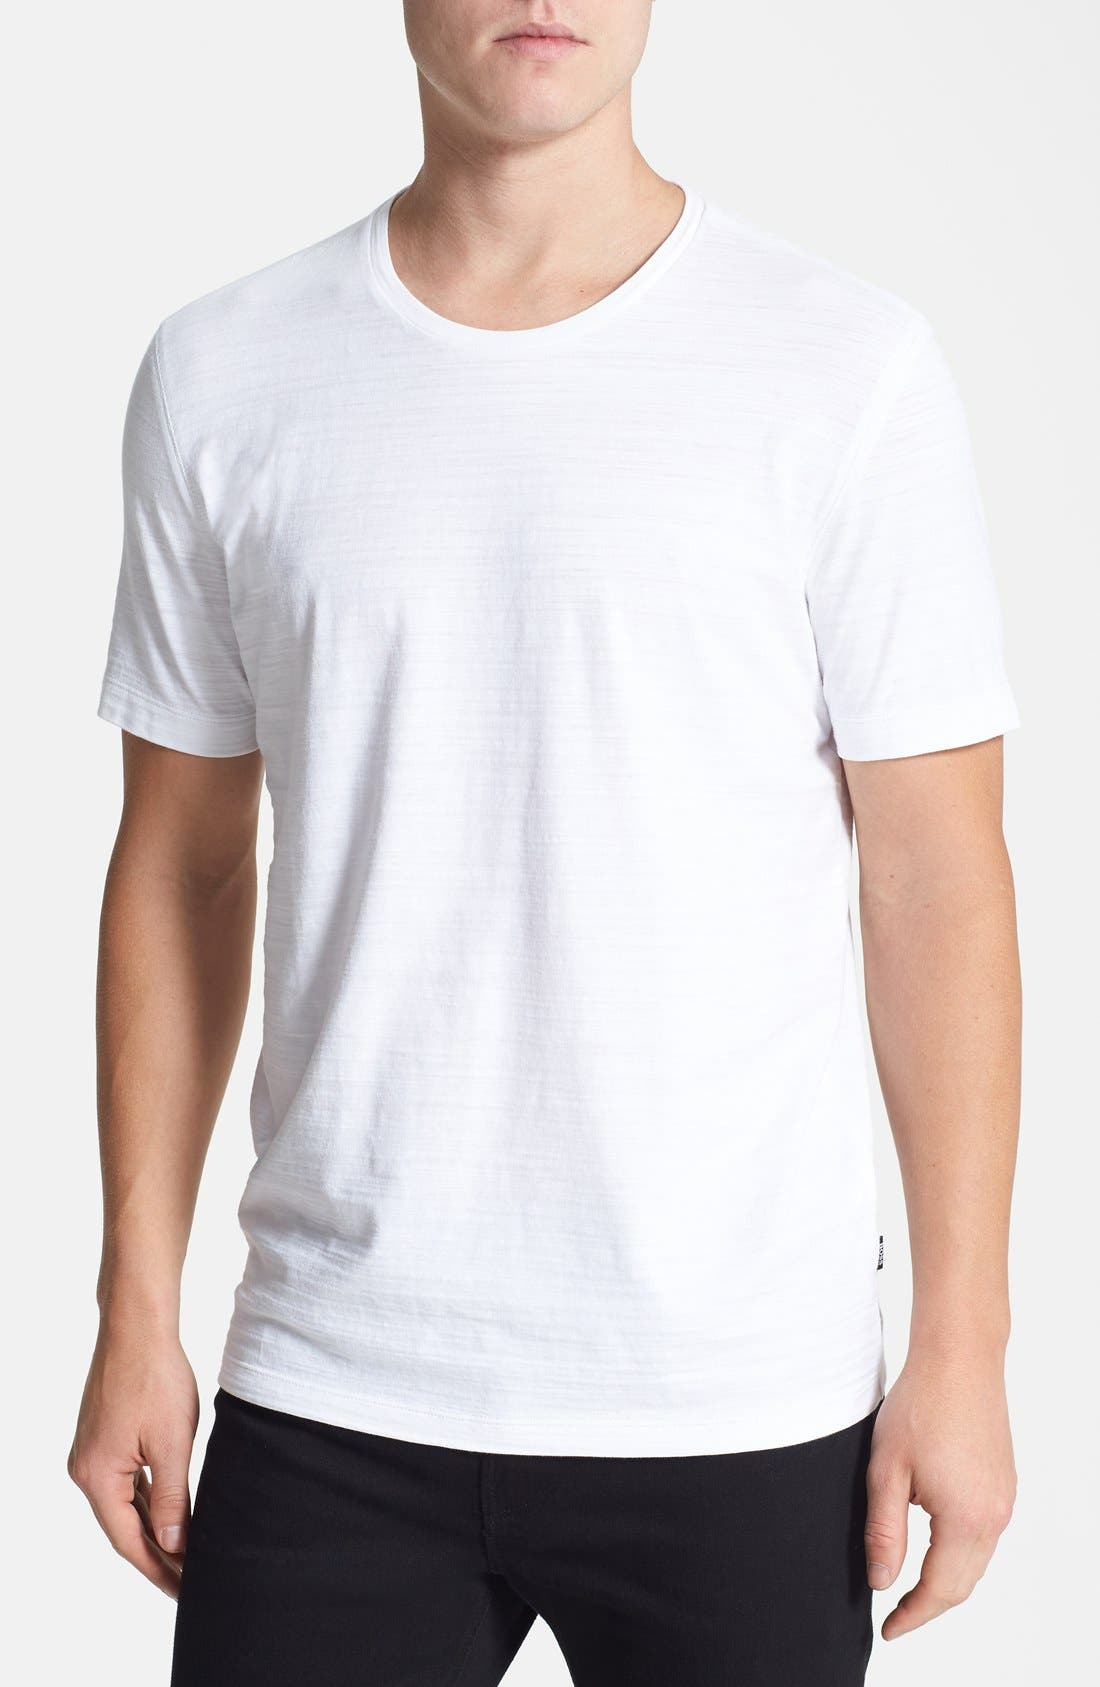 Main Image - BOSS HUGO BOSS 'Terni 103' Regular Fit Crewneck T-Shirt